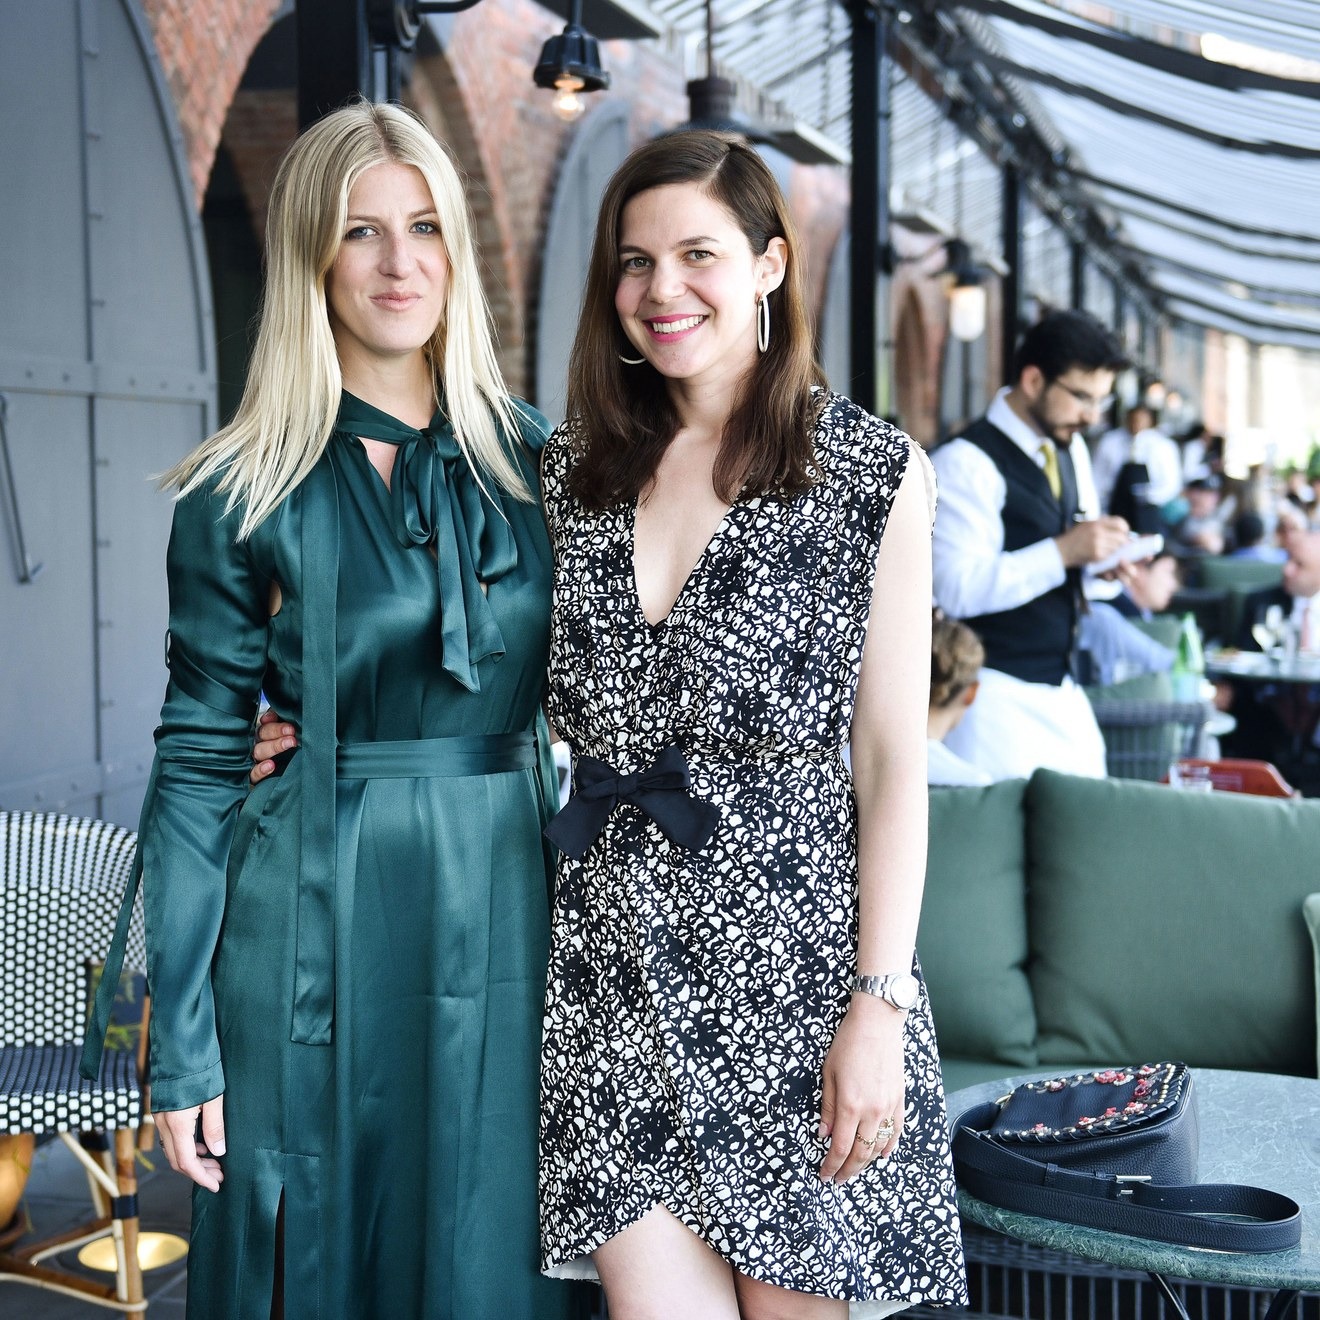 The Art Production Fund and Fort Gansevoort Host an Intimate Lunch to Kick Off Art Sundae    By Vogue June 28, 2017    View More